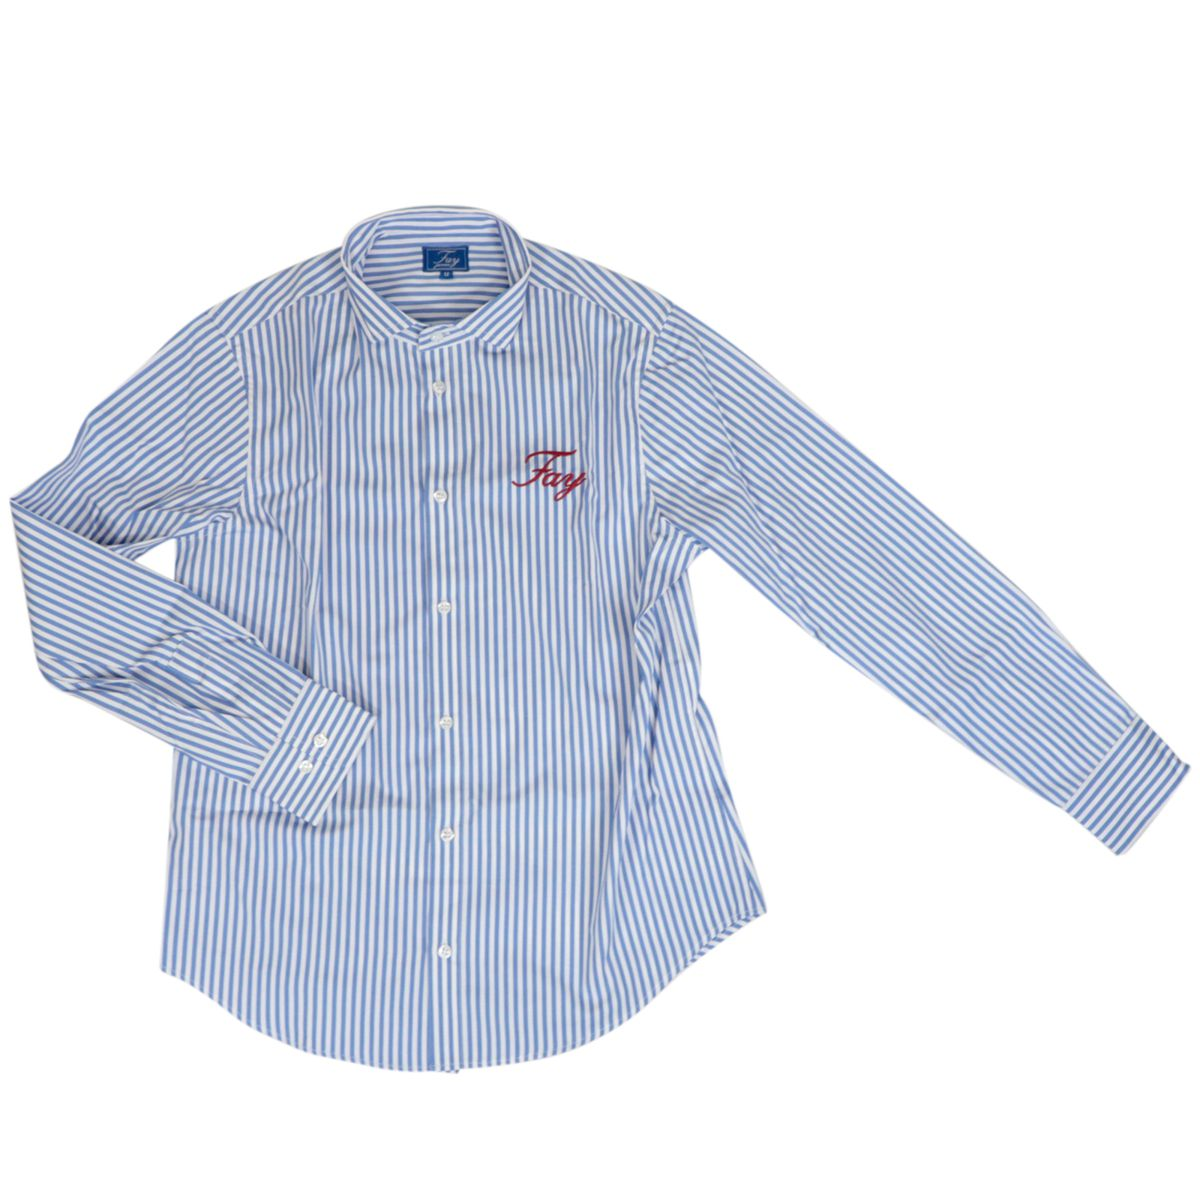 Striped cotton shirt with large embroidered logo White / light blue Fay